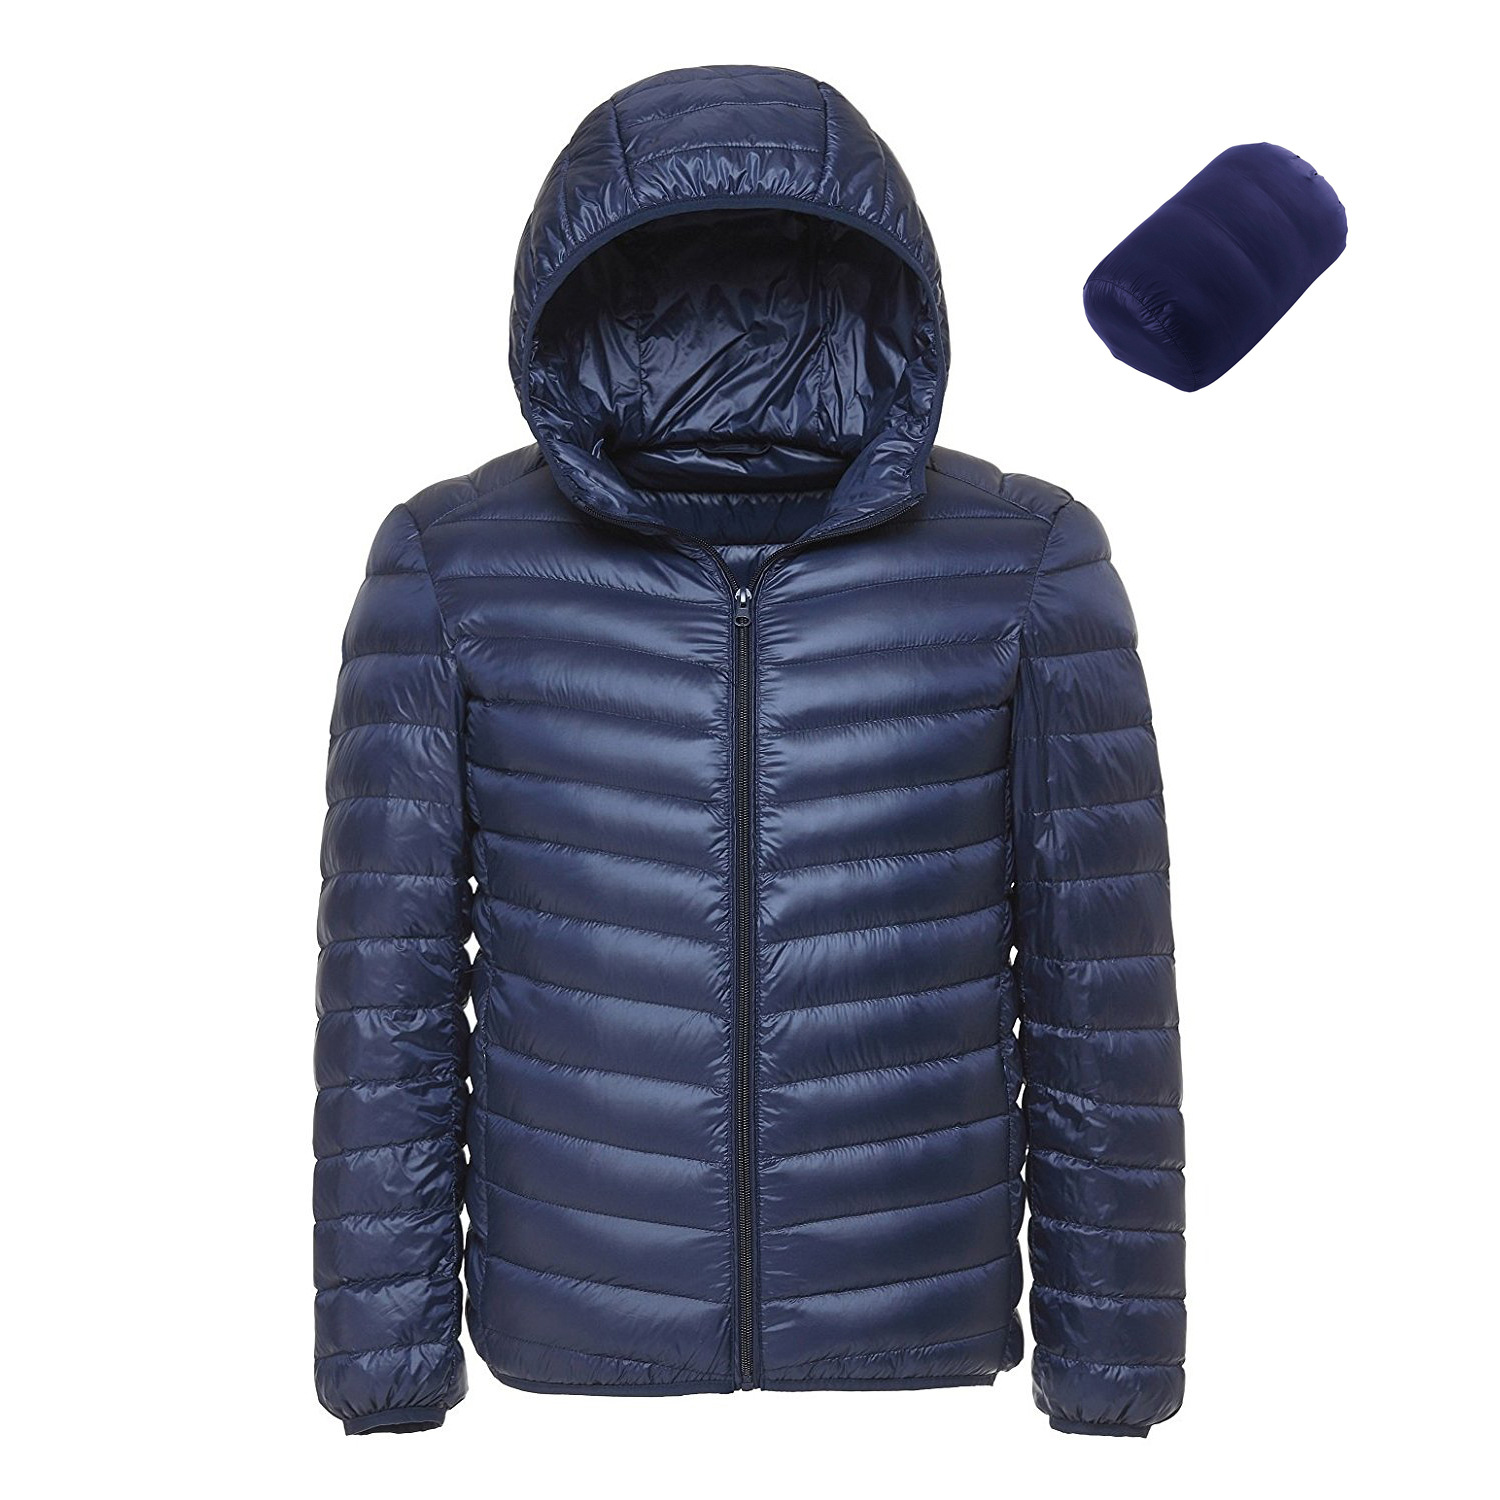 2019 Spring And Autumn Fashion Boutique White Duck Down Solid Color Lightweight Men's Casual Hooded Down Jacket Male Down Jacket